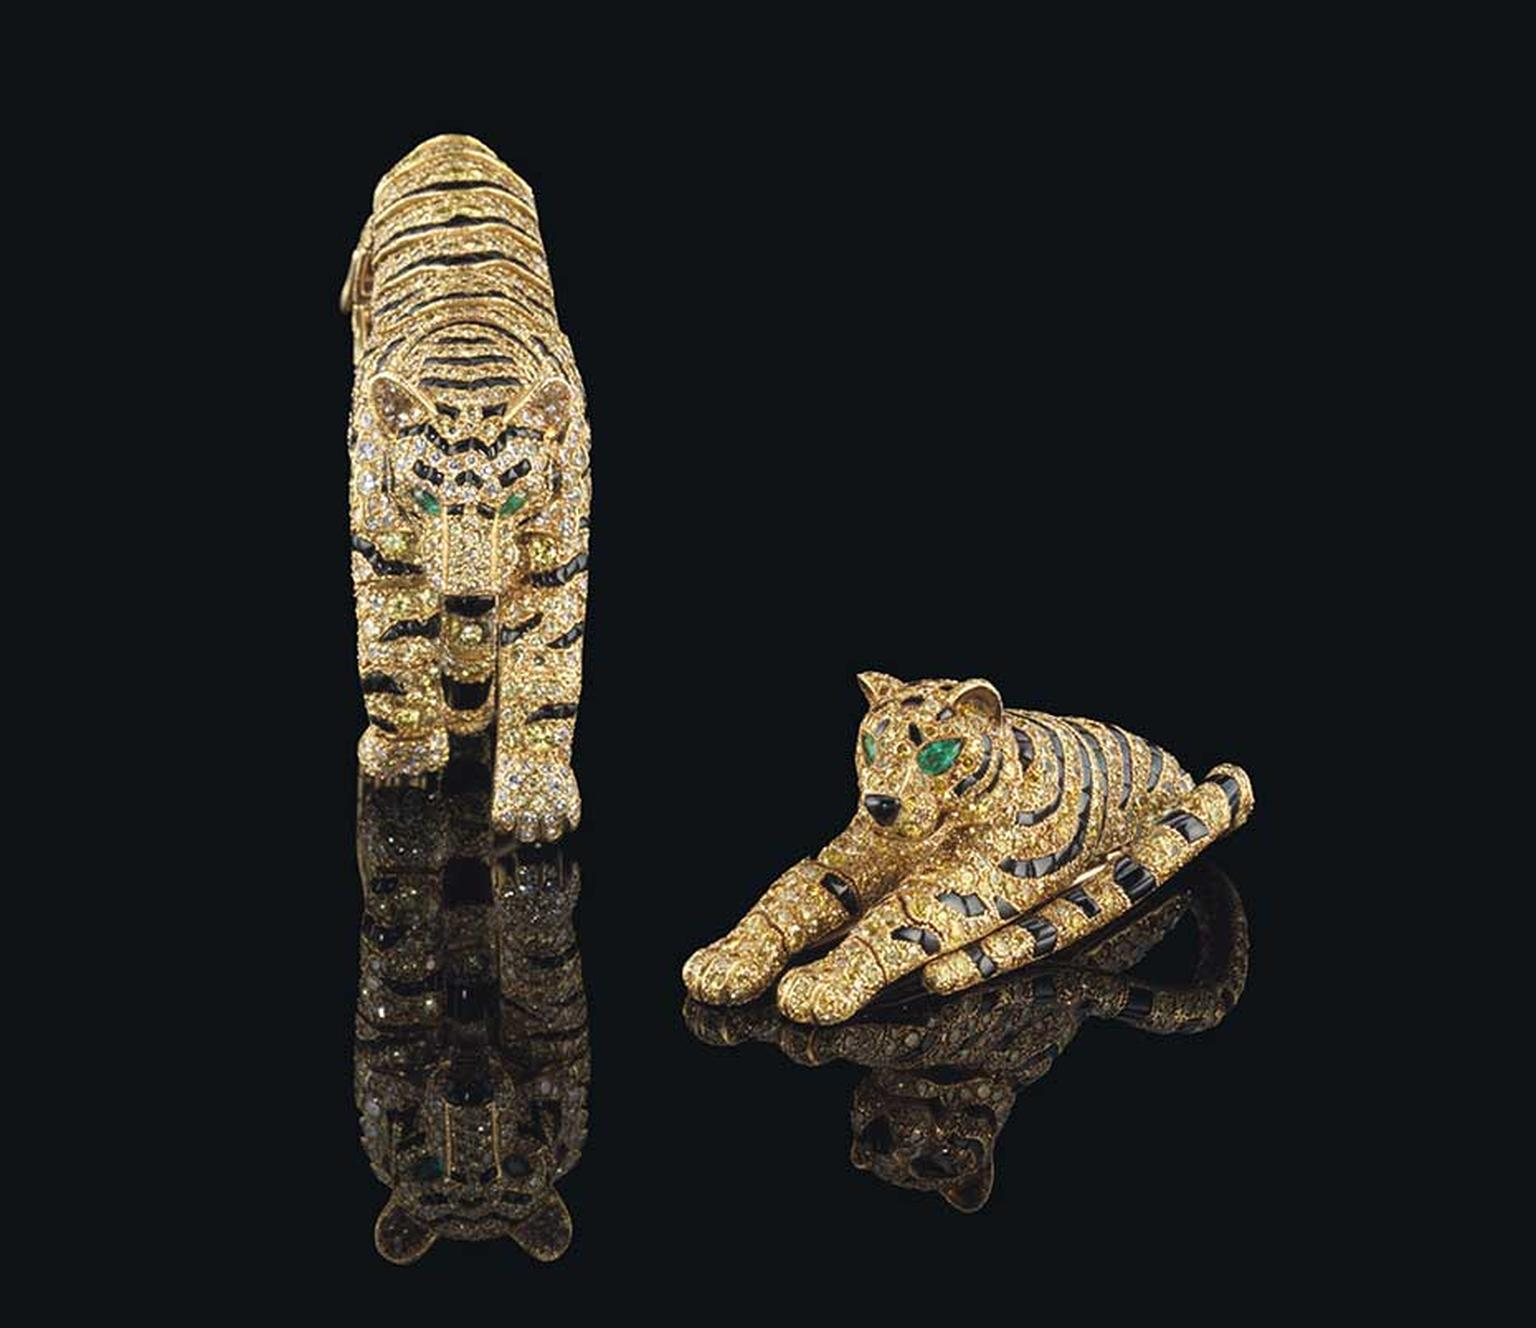 The Cartier Tiger bracelet and clip brooch, with diamonds, onyx and emeralds, which once belonged to the Duchess of Windsor and Sarah Brightman, are being sold as one lot at Christie's Magnificent Jewels auction on 11 November 2014 with a combined pre-sal